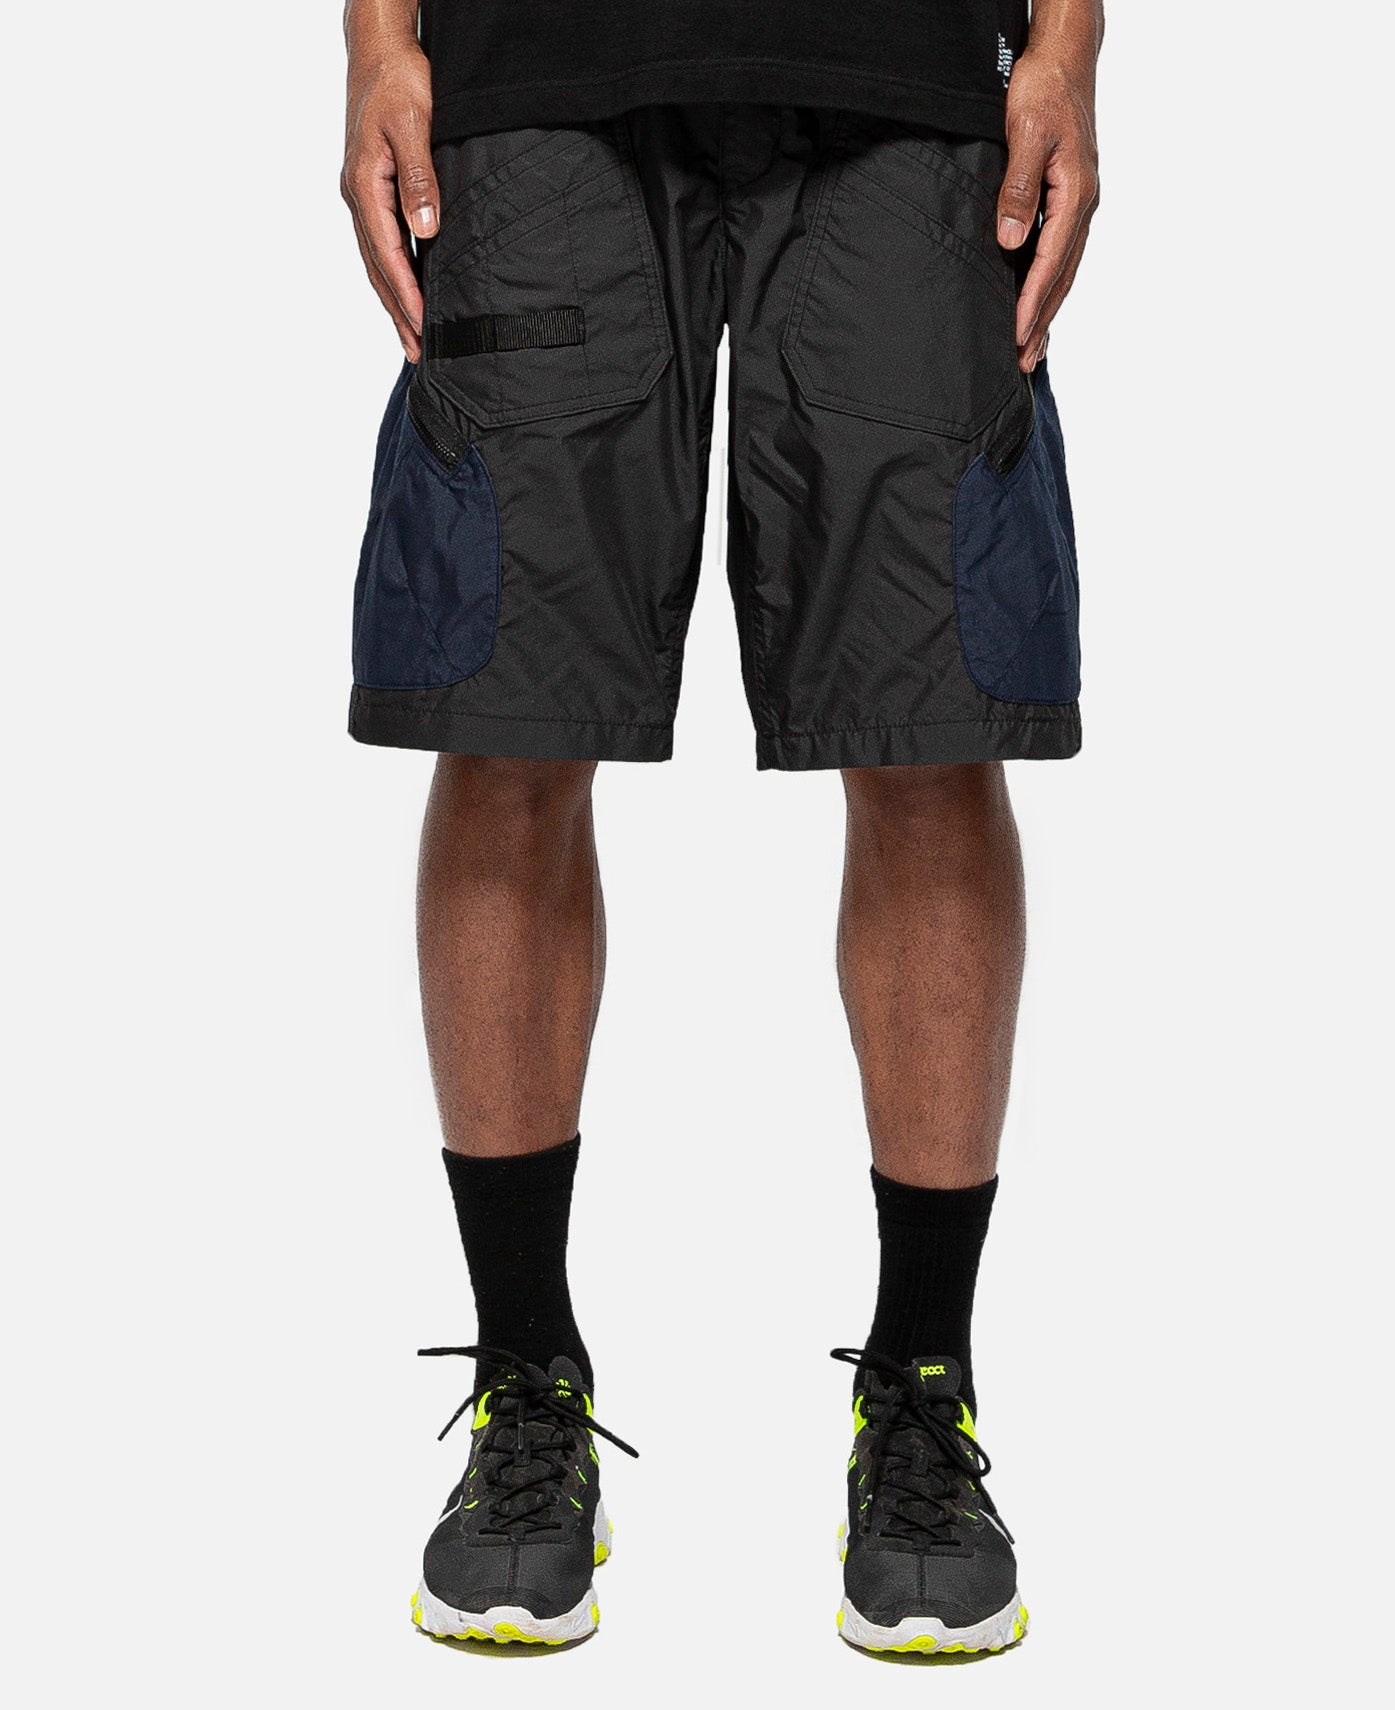 Cargo Short Pants (Black)